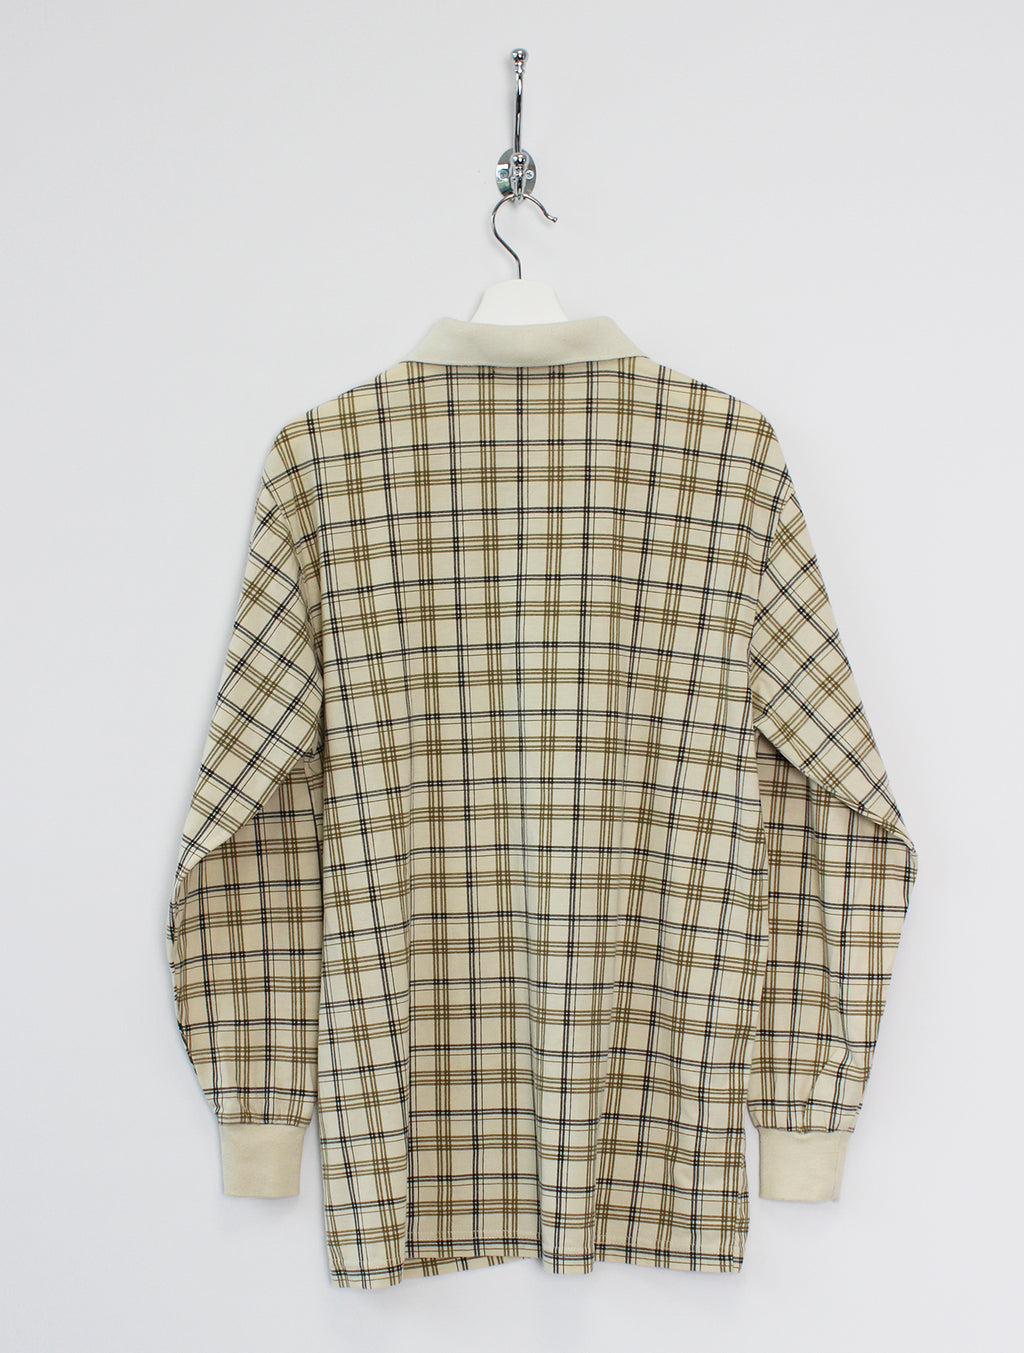 Burberry Polo Shirt (XL)